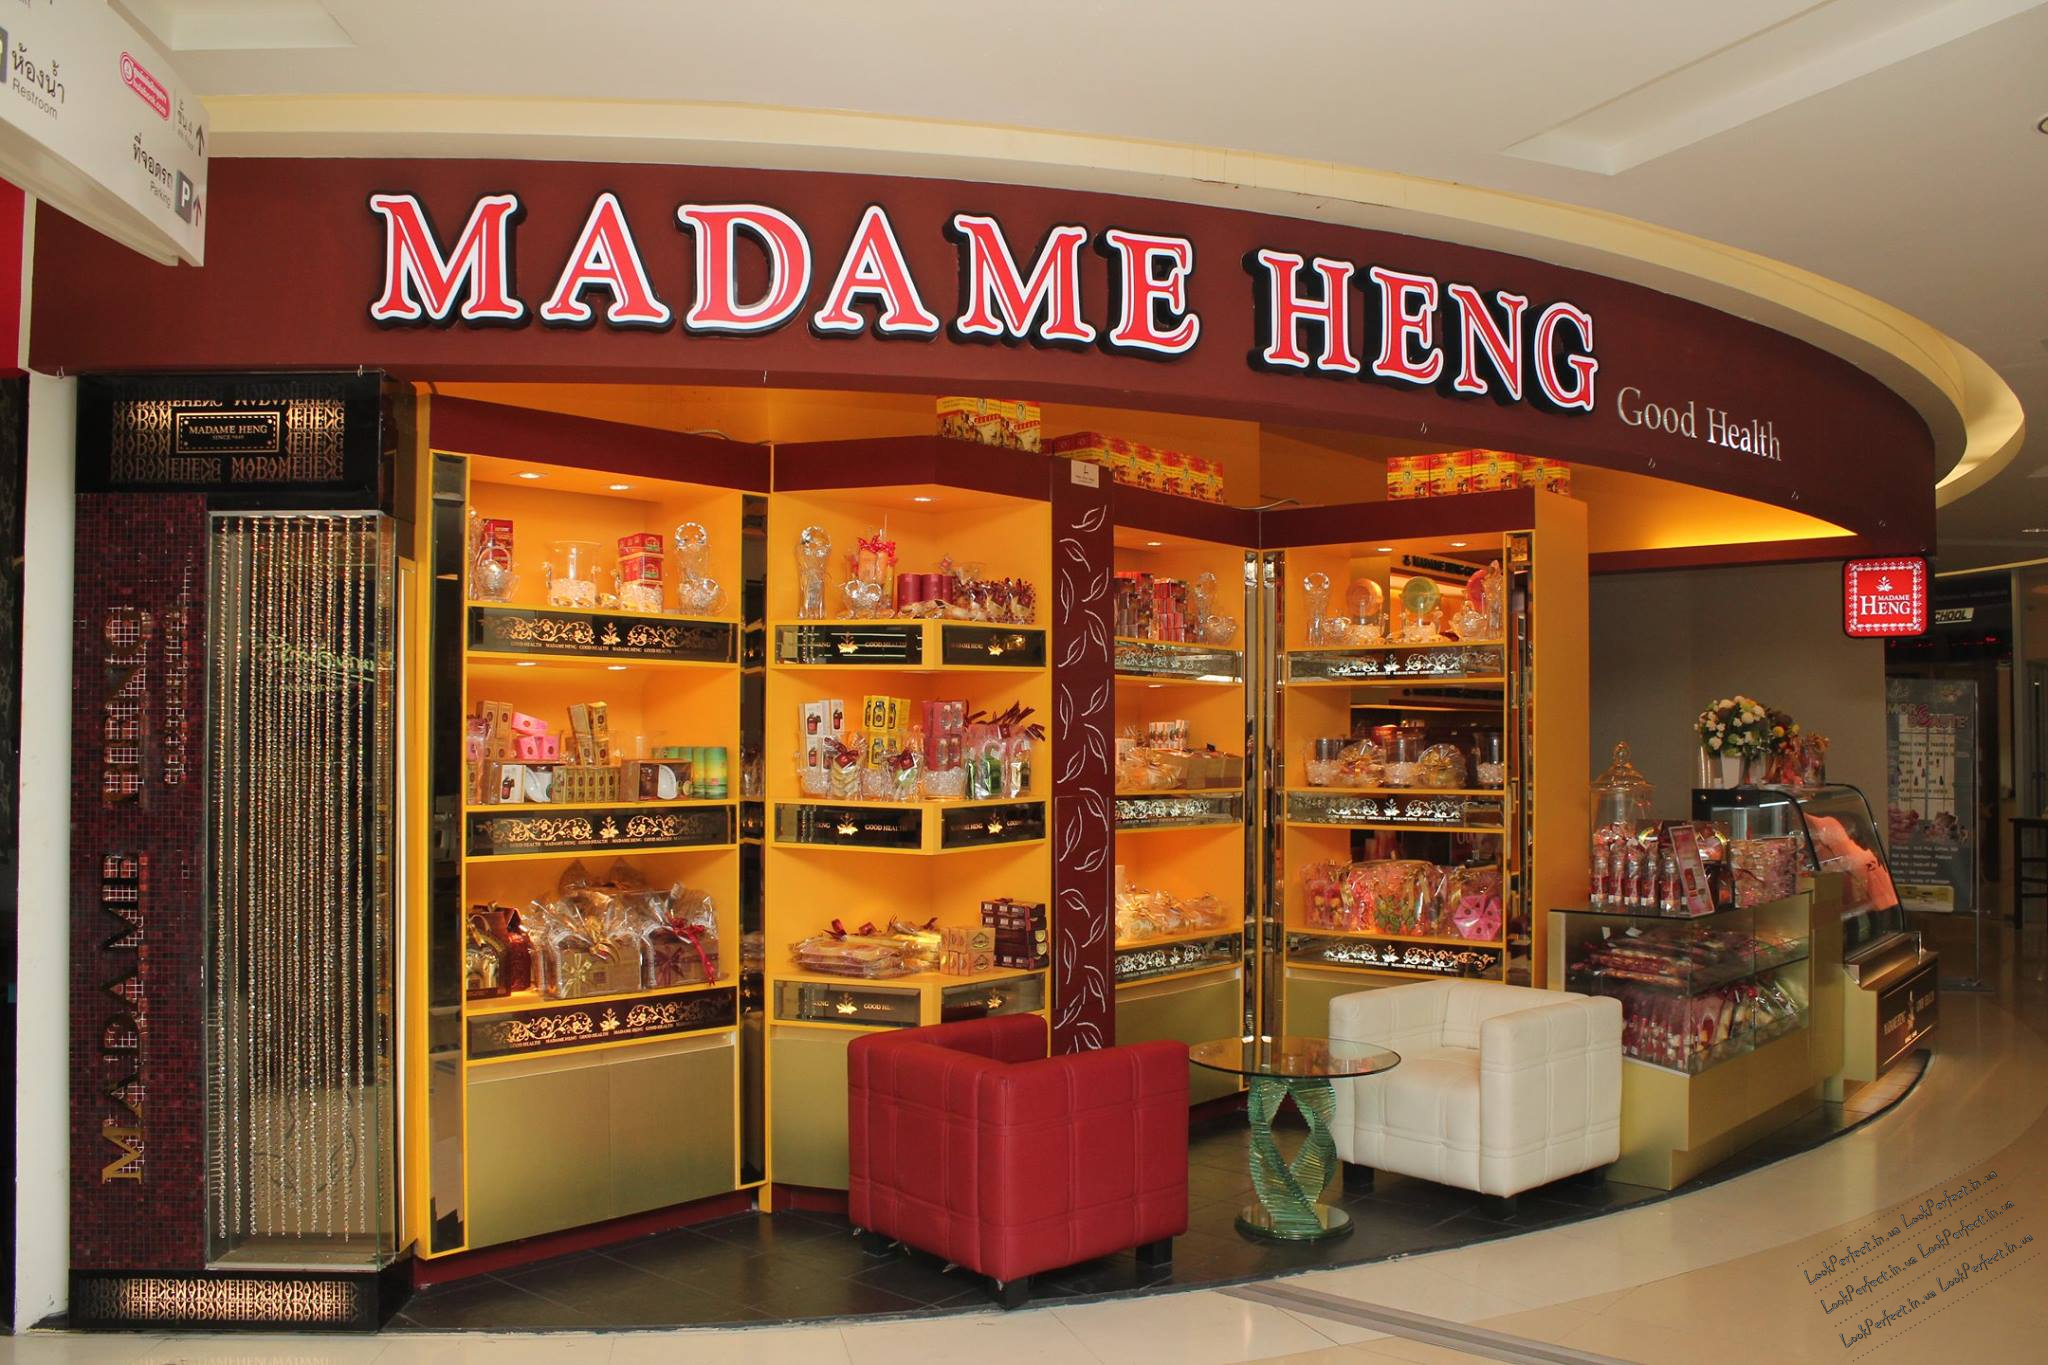 History of Madame Heng